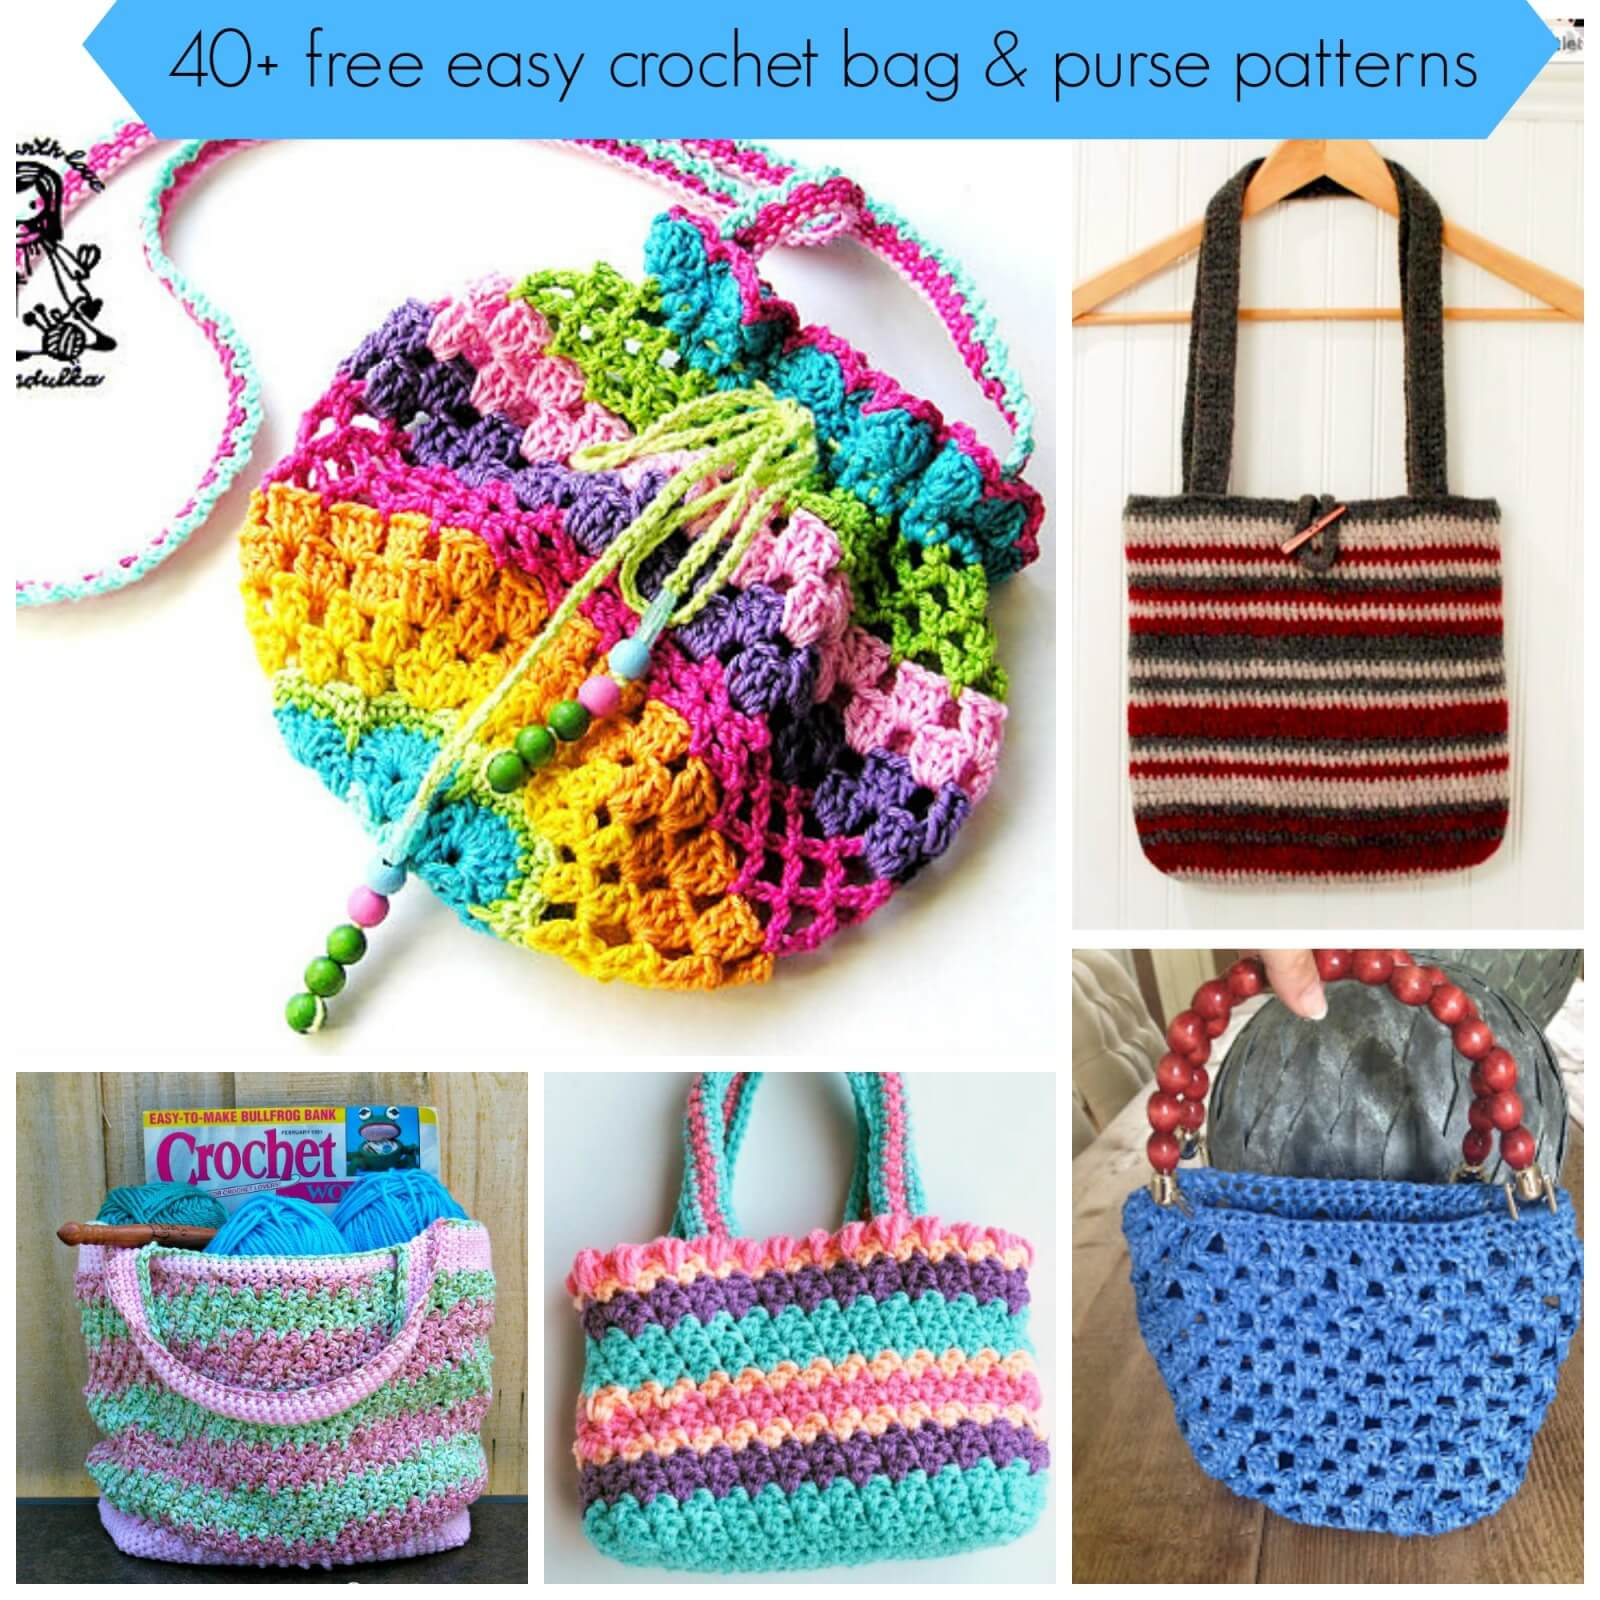 40+free-easy-crochet-bag-and-purse-pattern-tutorial.jpg